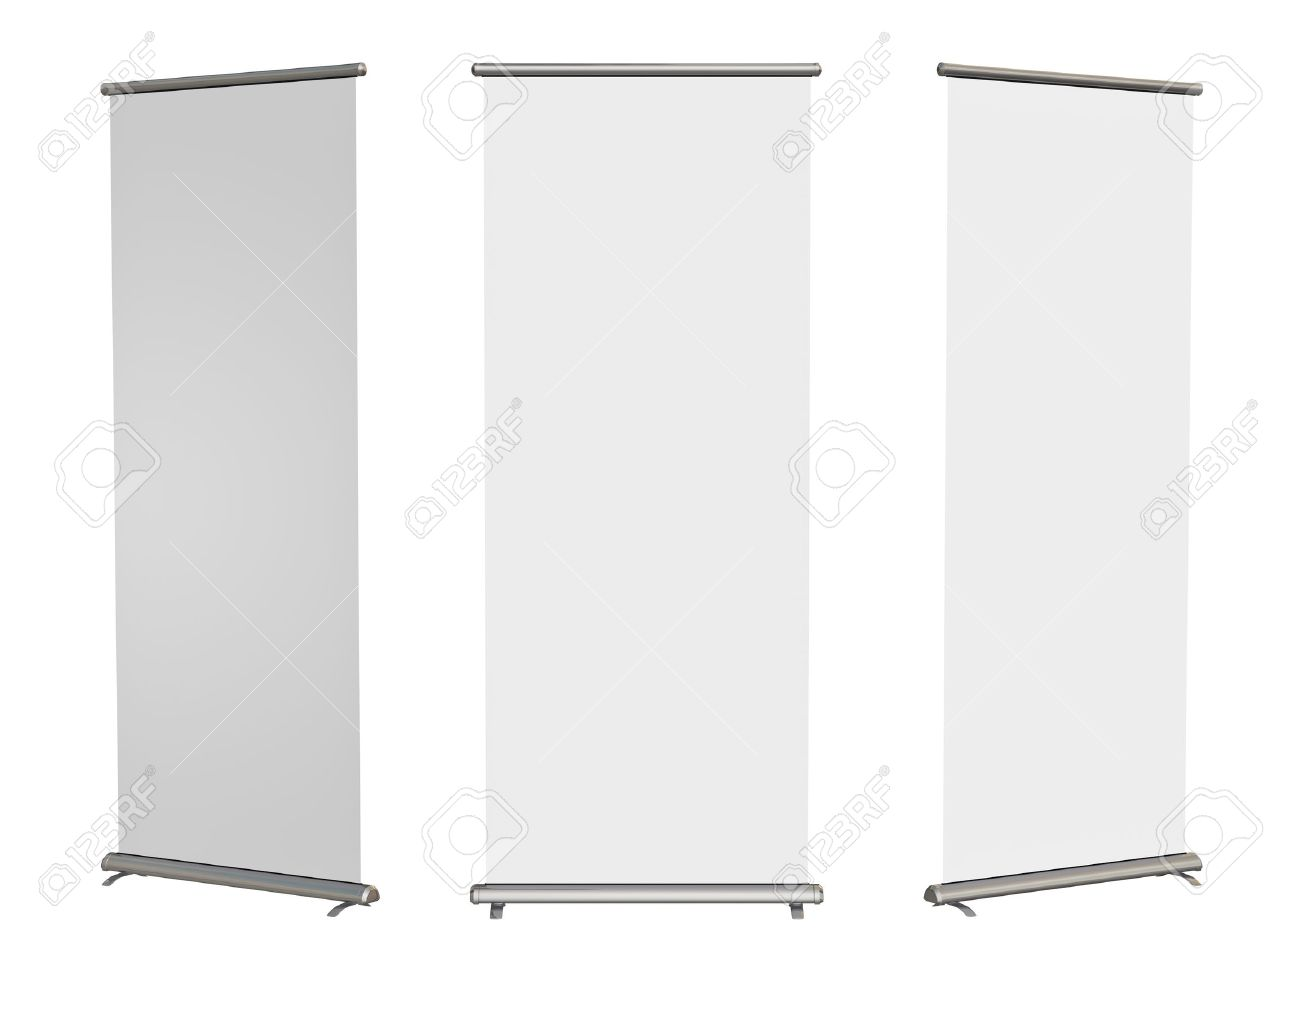 Blank roll-up banner display, isolated with clipping path - 30491921